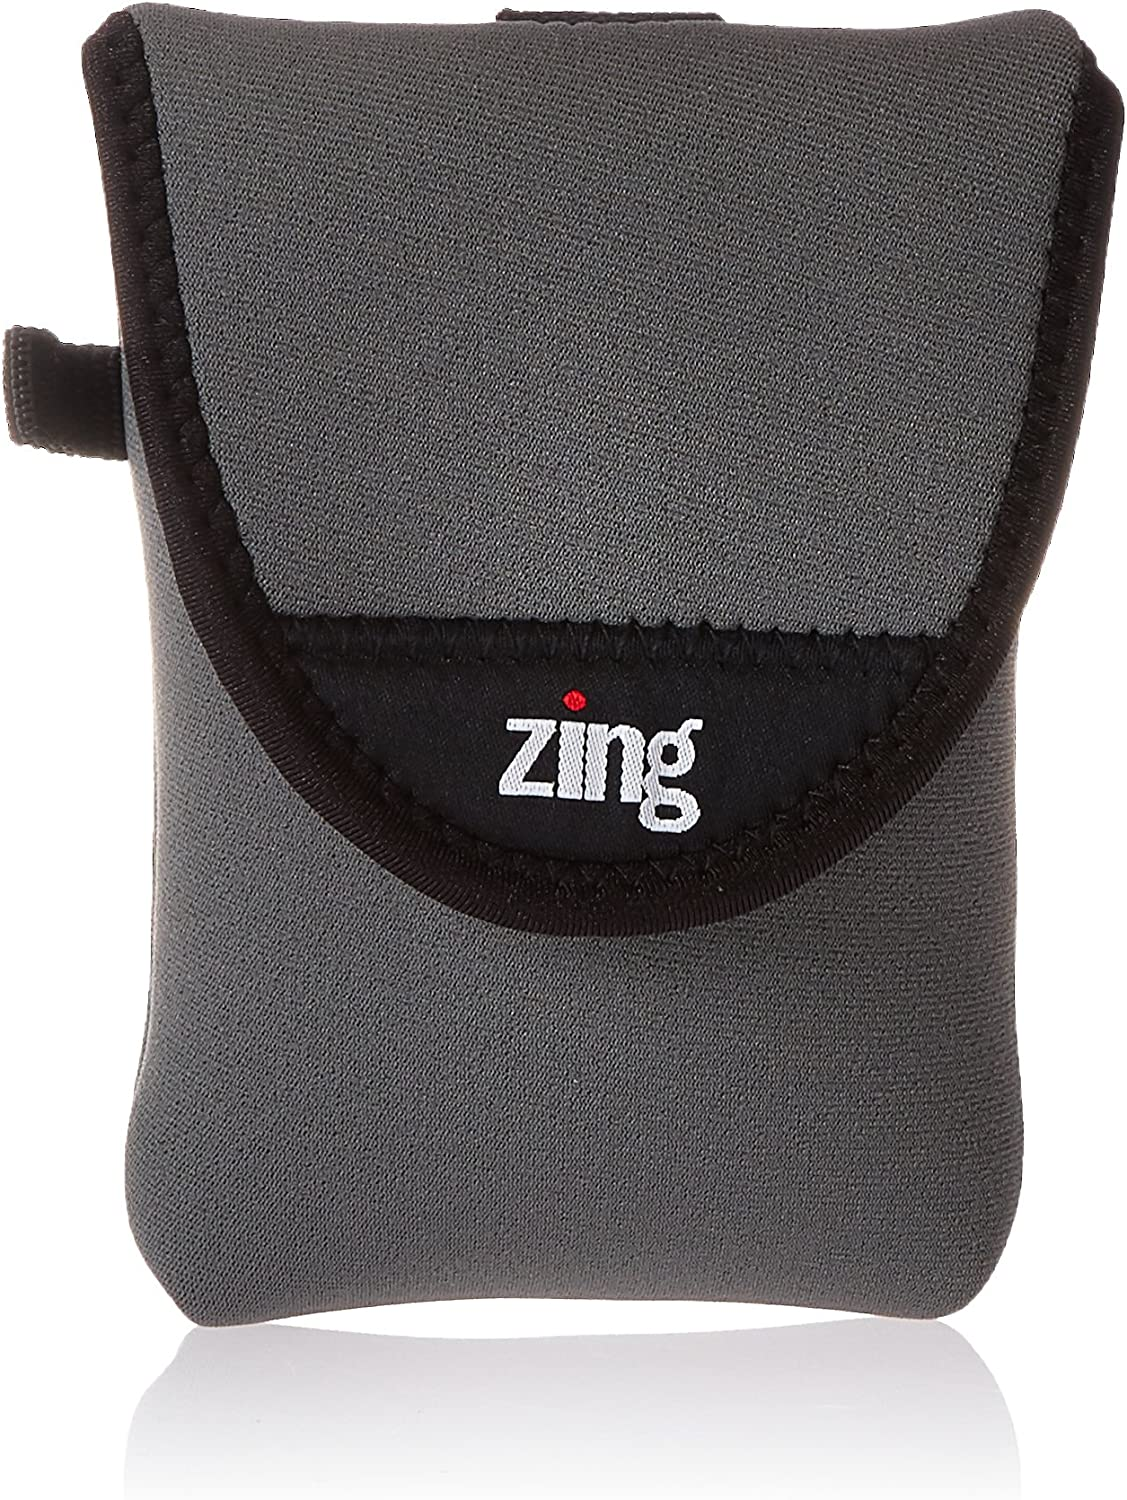 Zing 571-221 MPEBK1 Medium Electronic Belt Bag Black